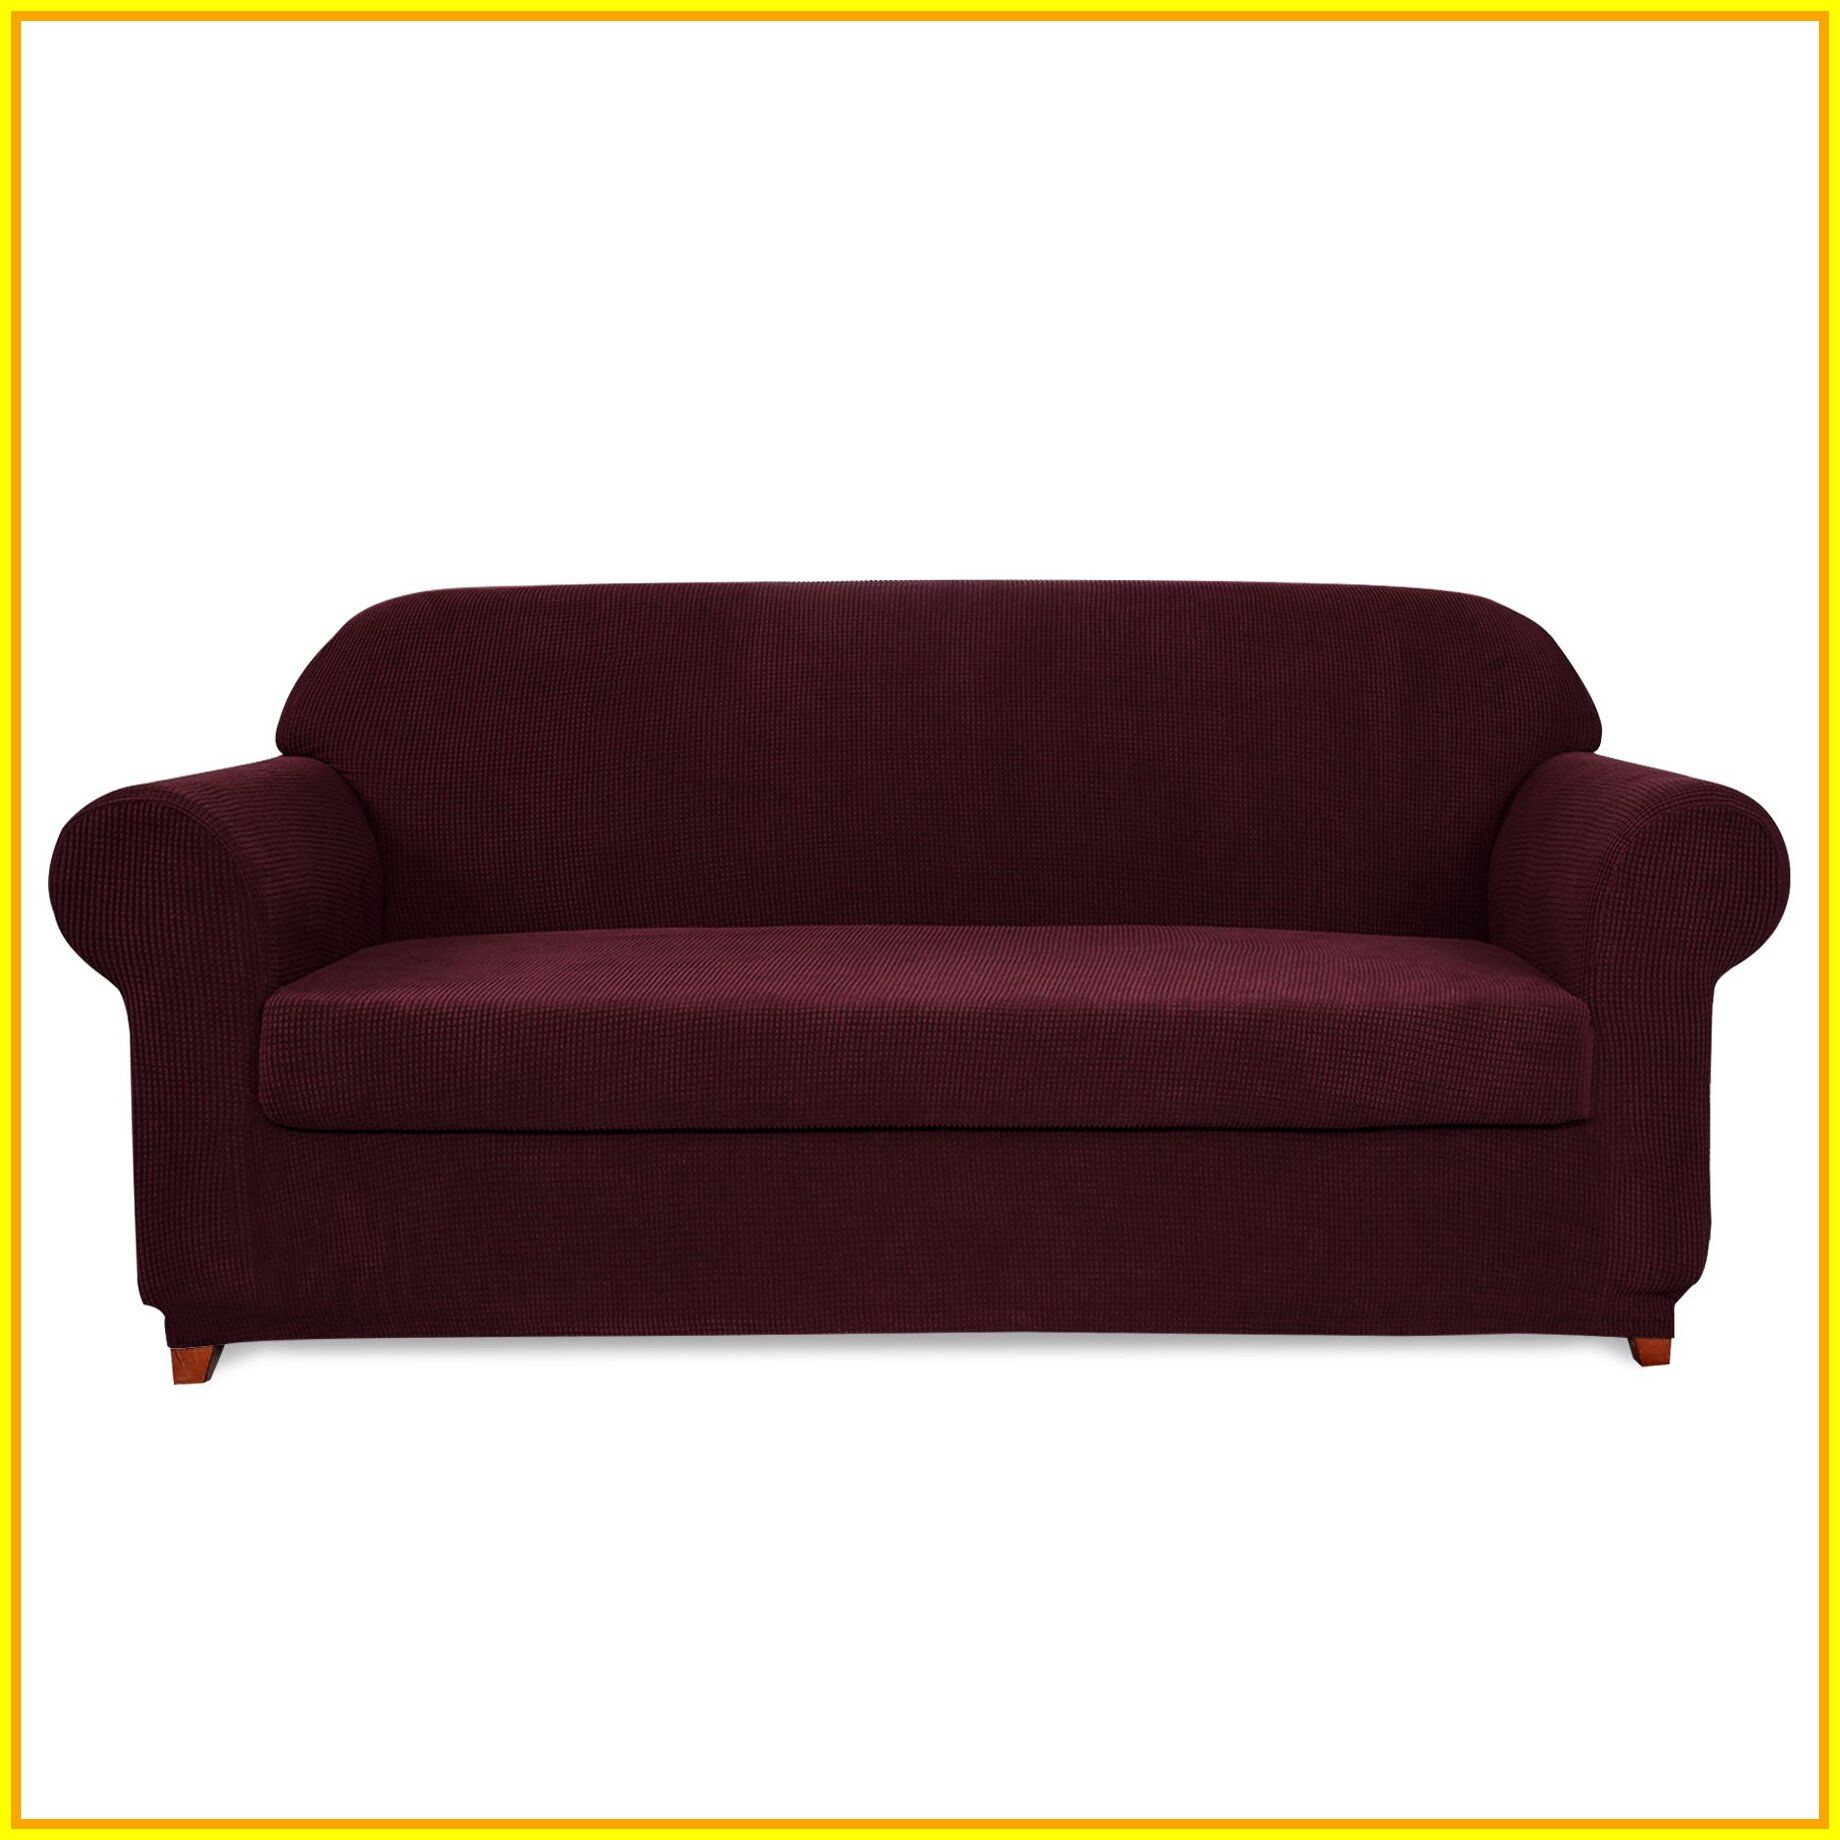 51 amazon couch slipcovers #amazon #couch #slipcovers Please Click Link To Find More Reference,,, ENJOY!!